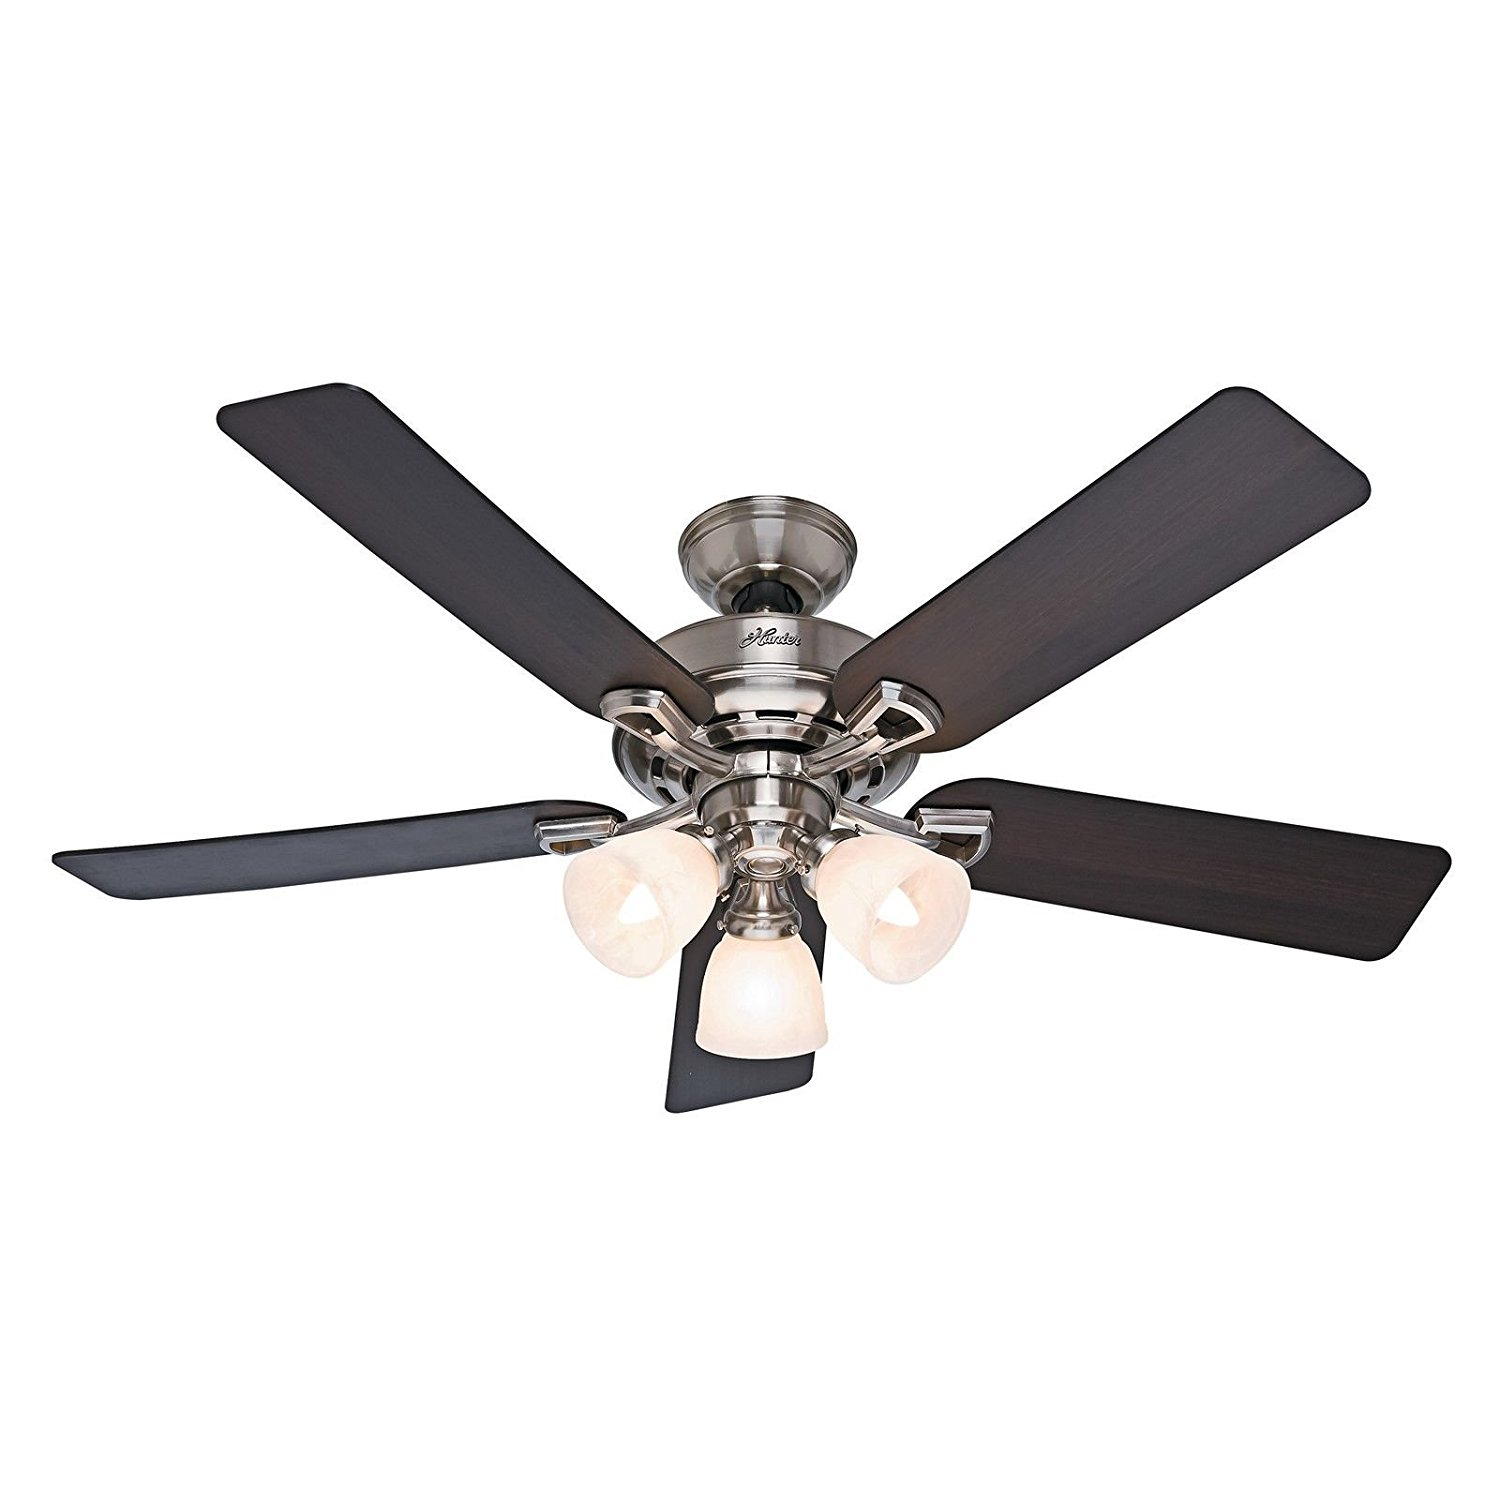 Ceiling Fans With Remote Control Benefit Cool Ideas For Home